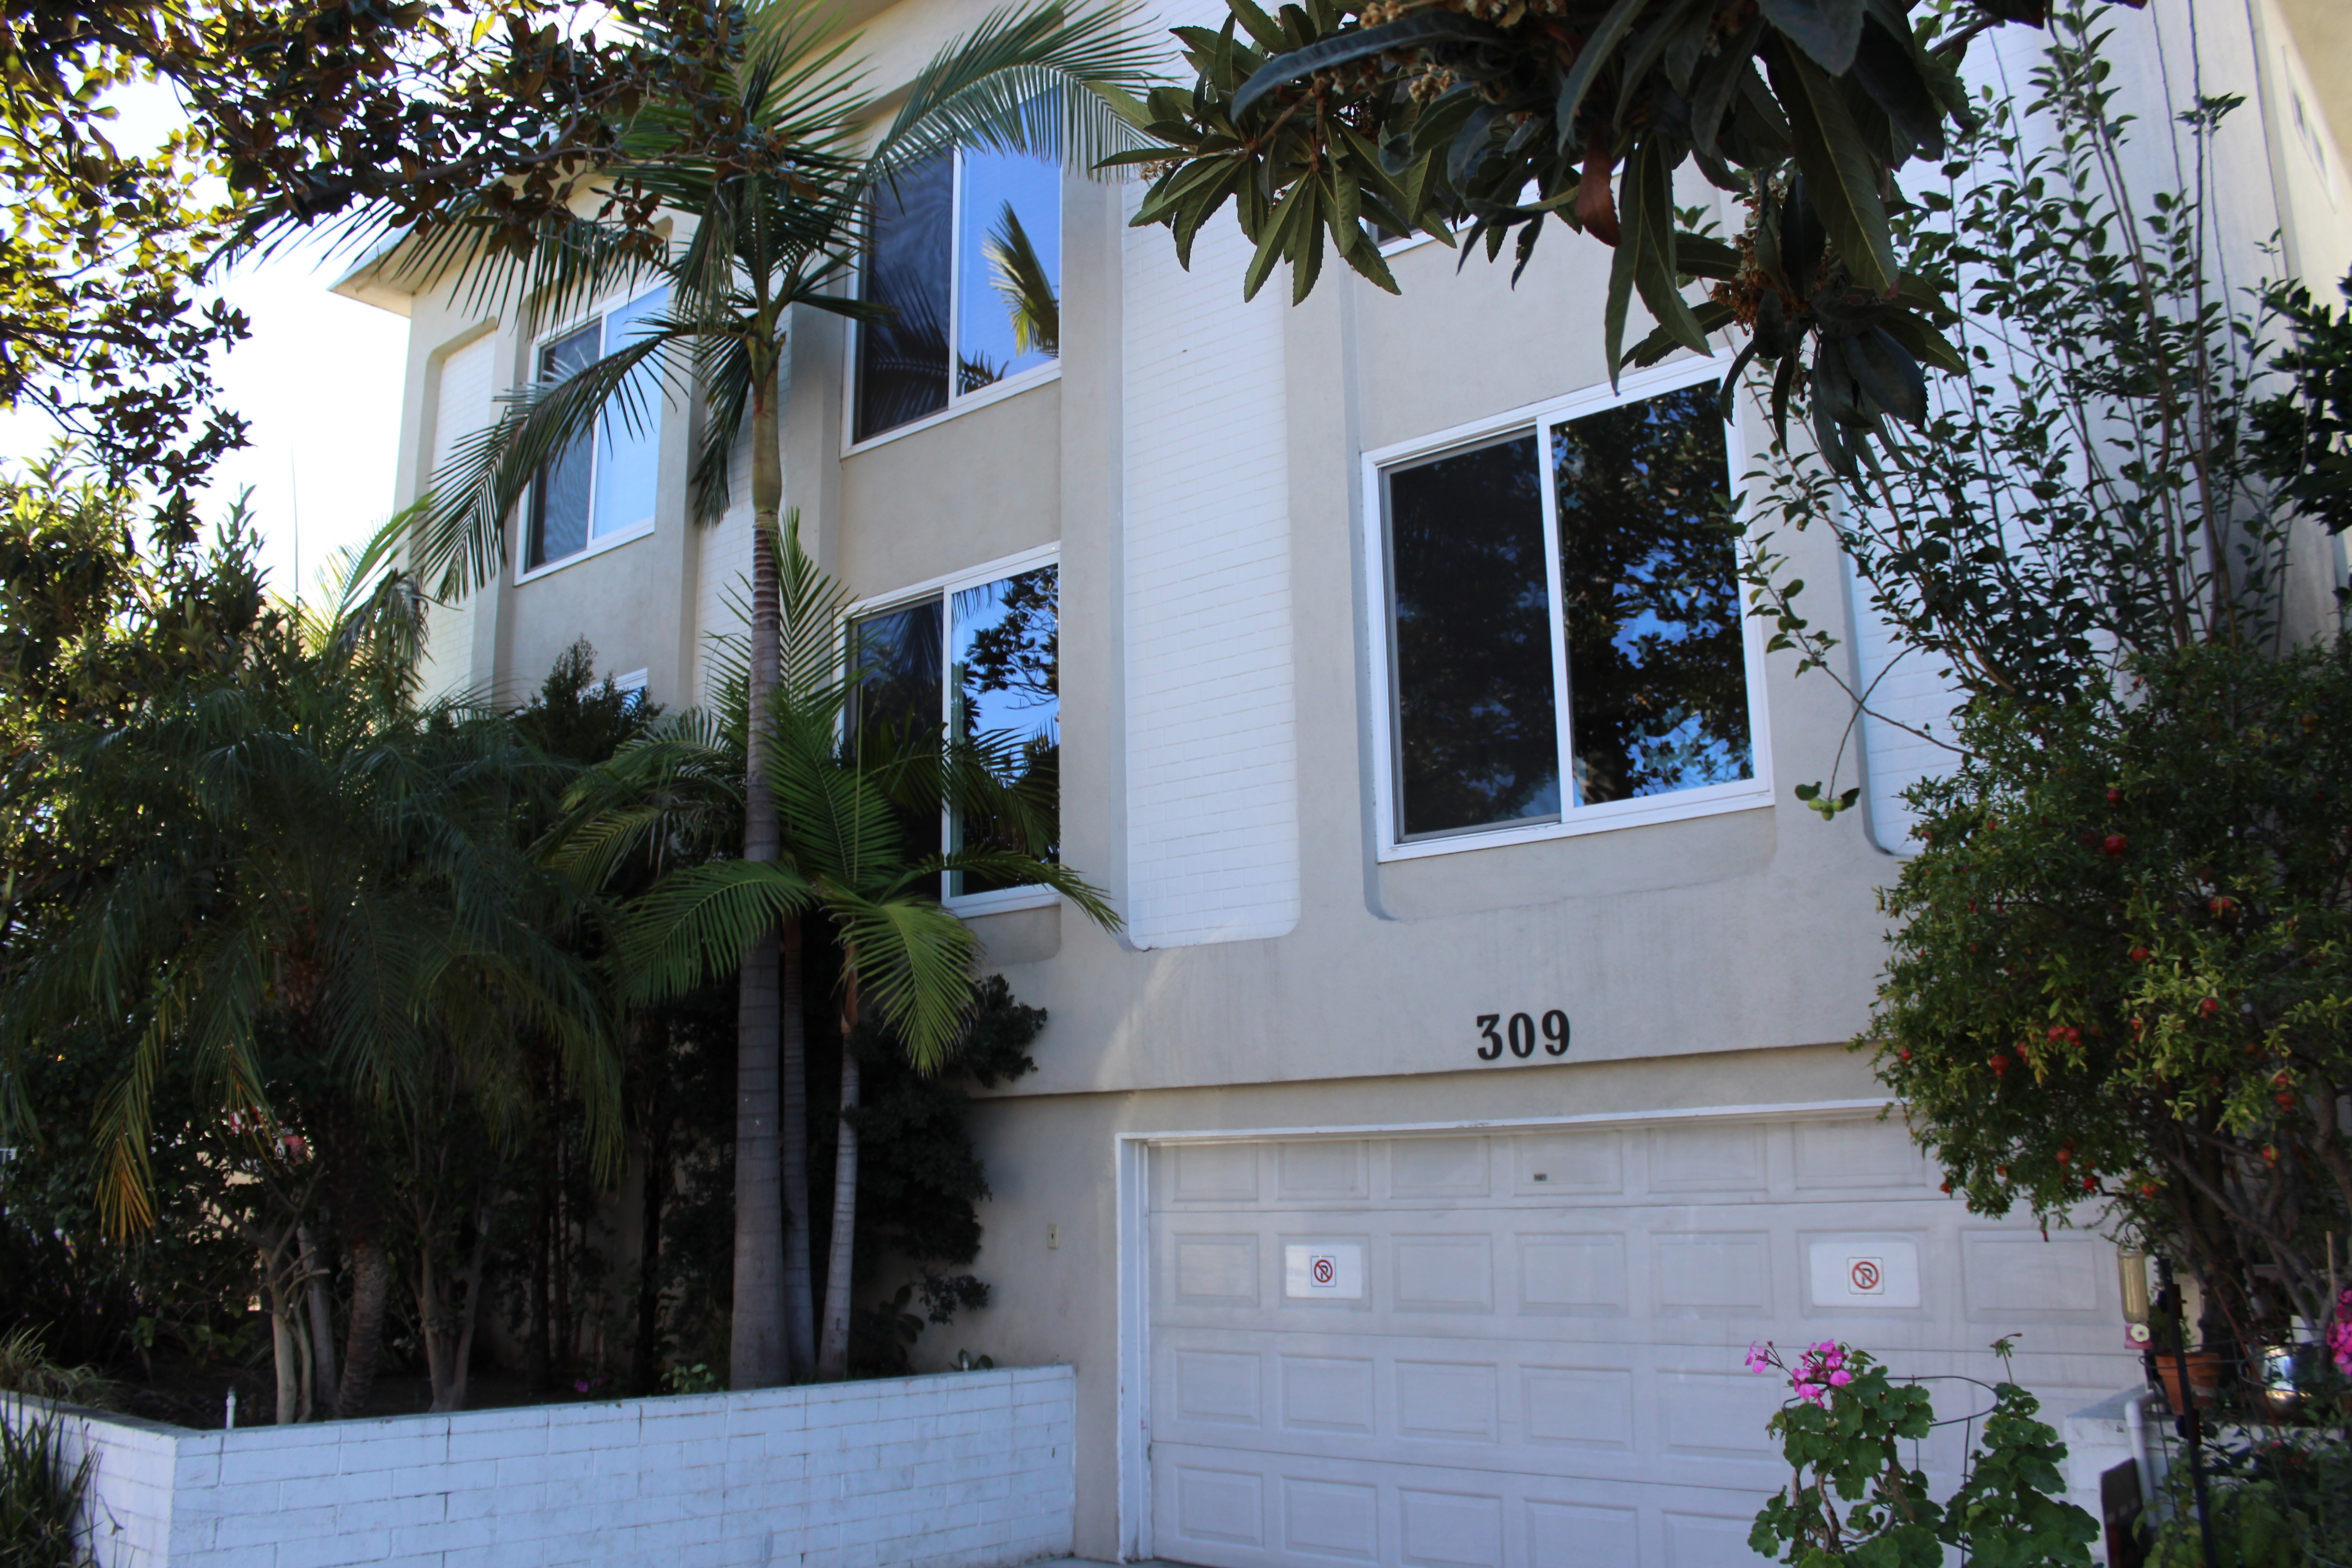 309 s doheny dr 1 beverly hills ca 90211 3 bedroom apartment for rent for 4 795 month zumper